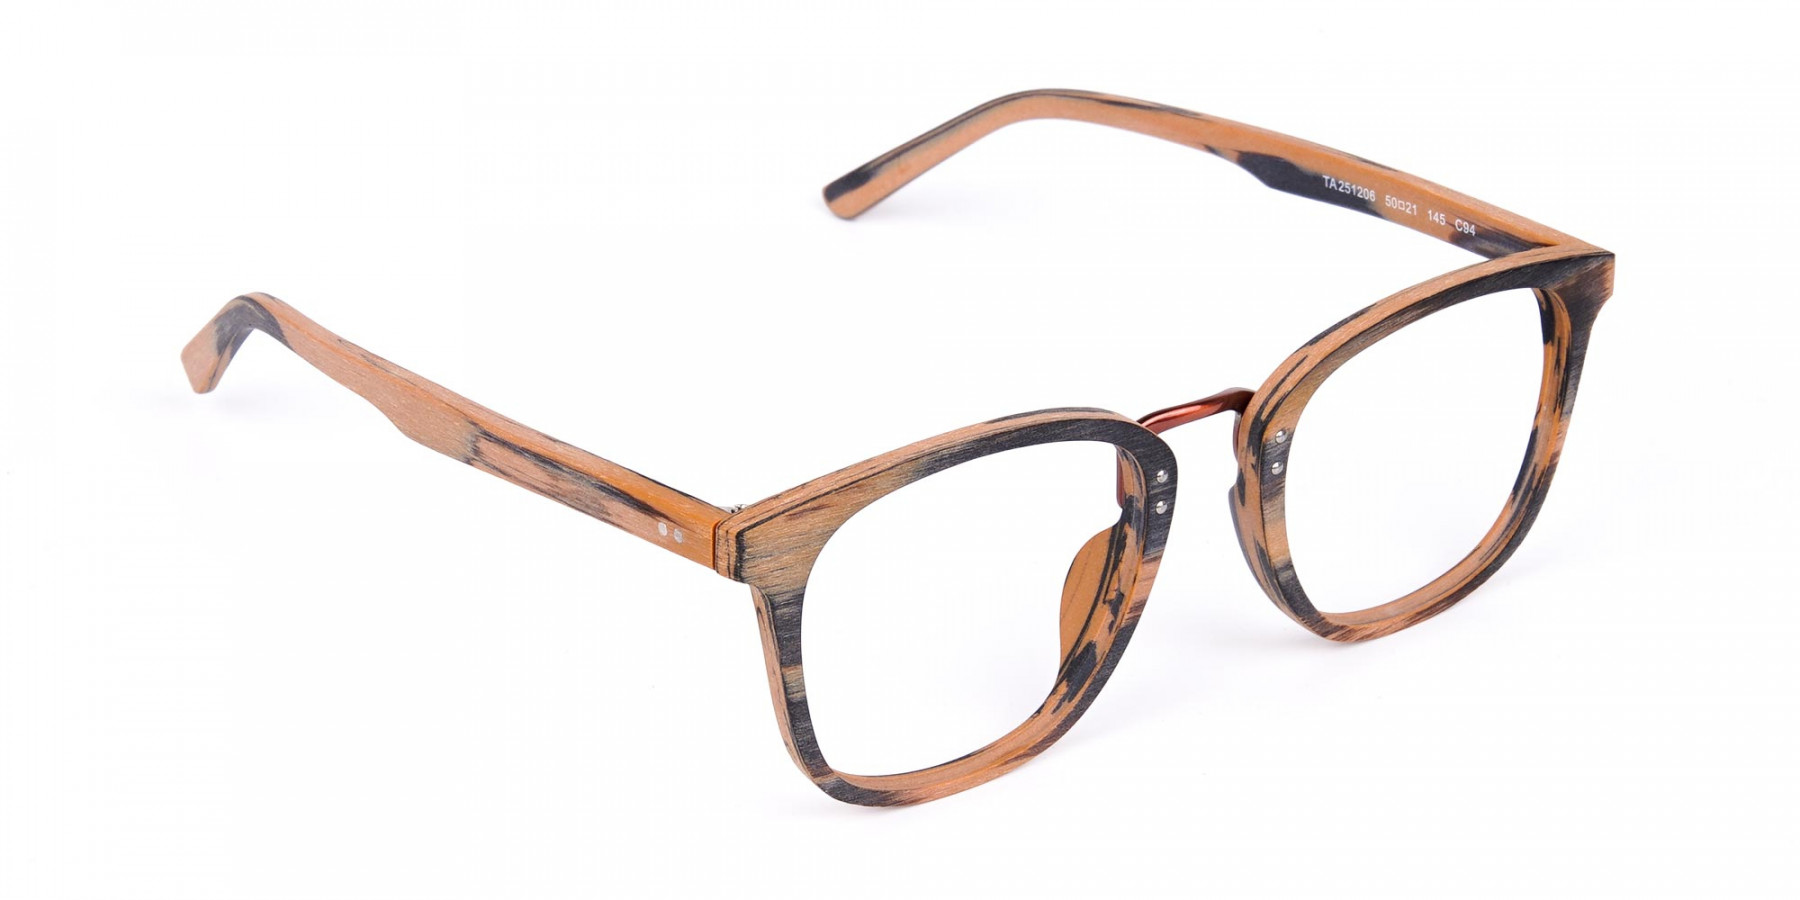 Wooden-Texture-Brown-and-Grey-Rim-Glasses-1